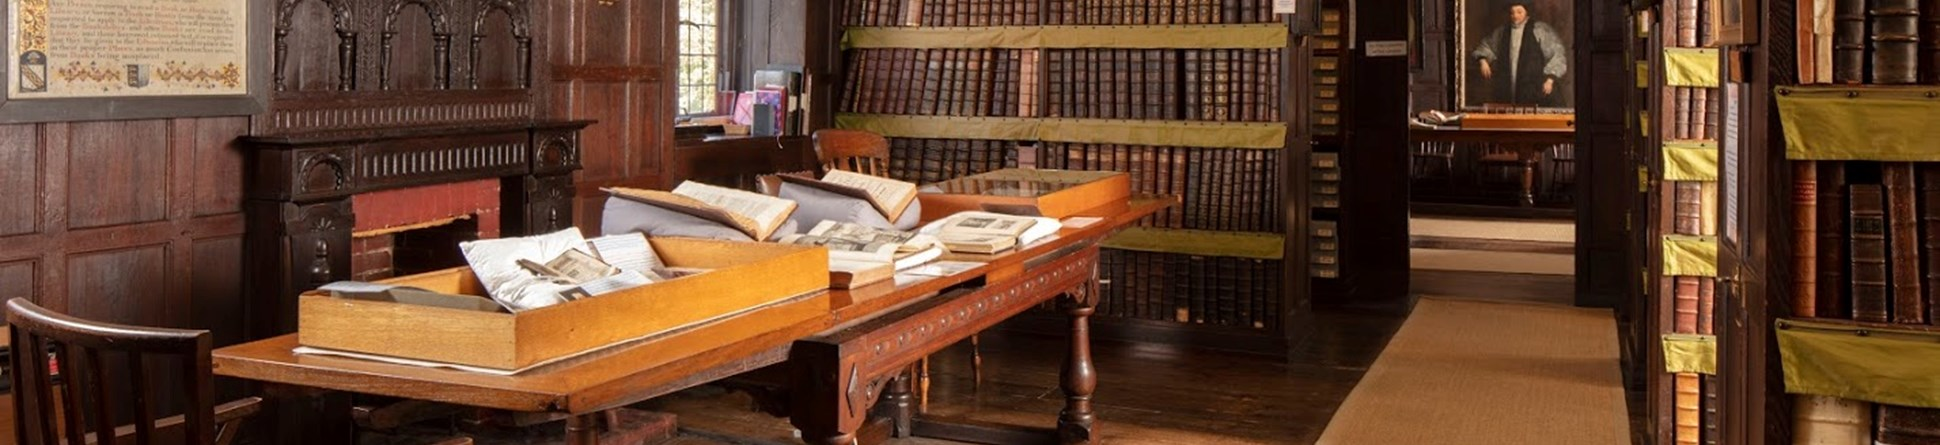 The library room shows dark wood panelling, wooden floorboard and dark wood bookcases with a long table to the left, covered in historic books. Historic portraits line the walls.